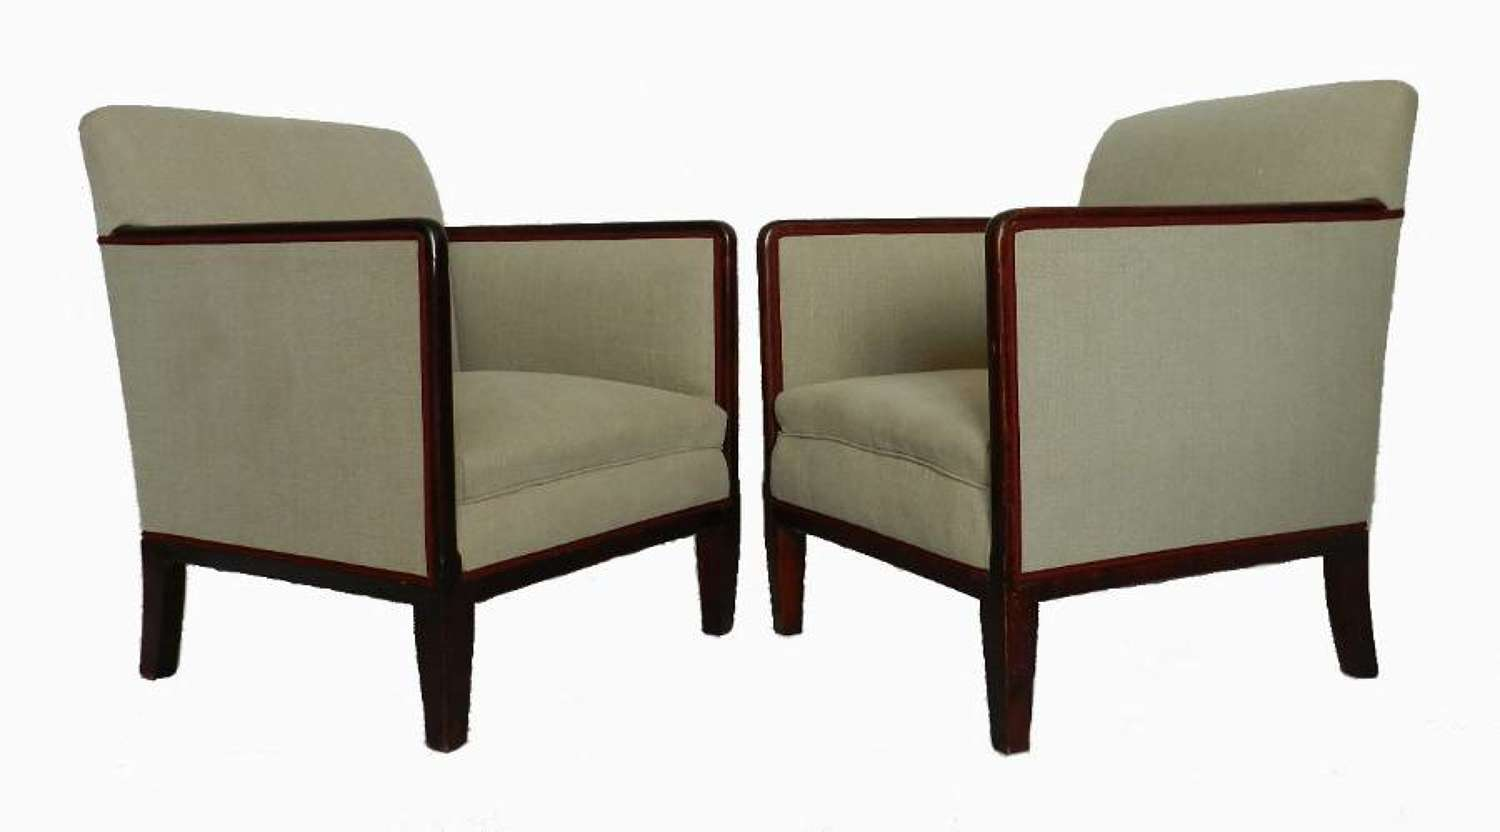 Pair French Art Deco Armchairs newly upholstered